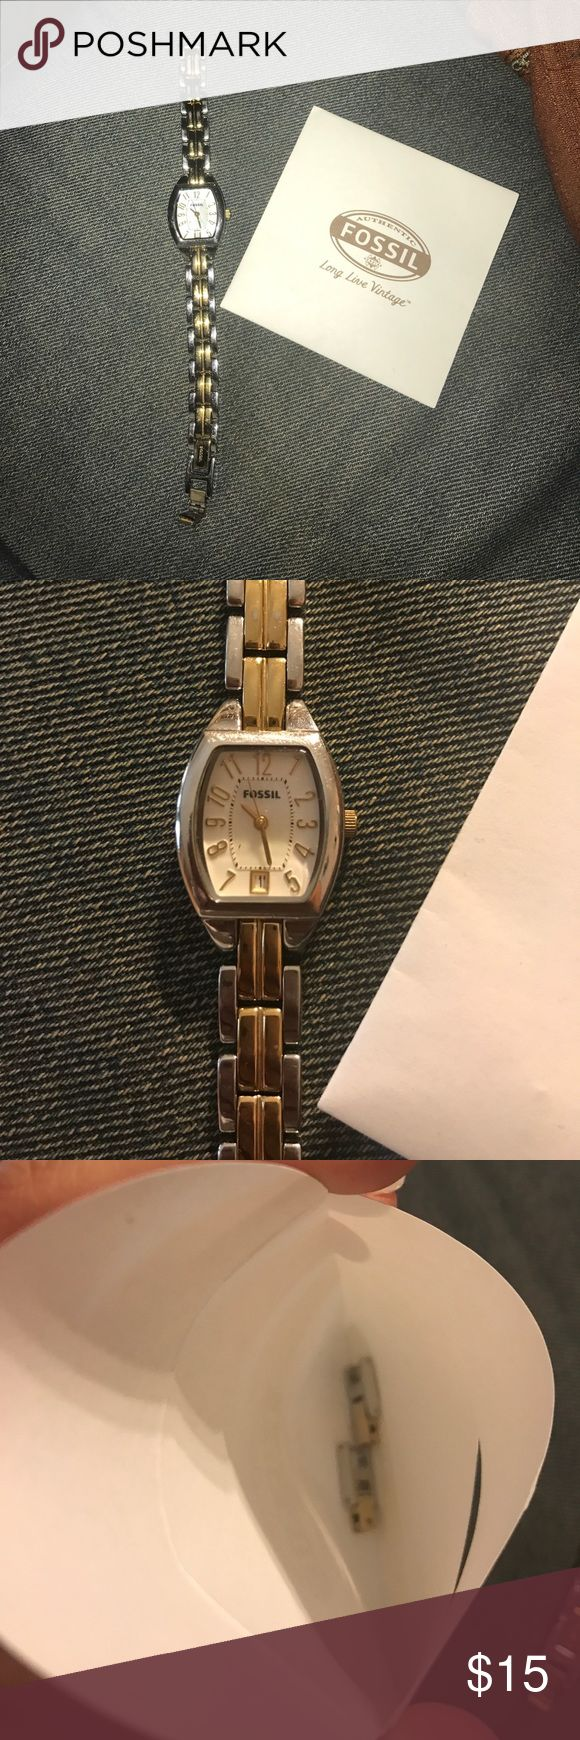 Fossil watch Gold & silver stainless steel. Used. Does need battery replacement. Comes w/links for sizing. Clasp closure. Fossil Accessories Watches